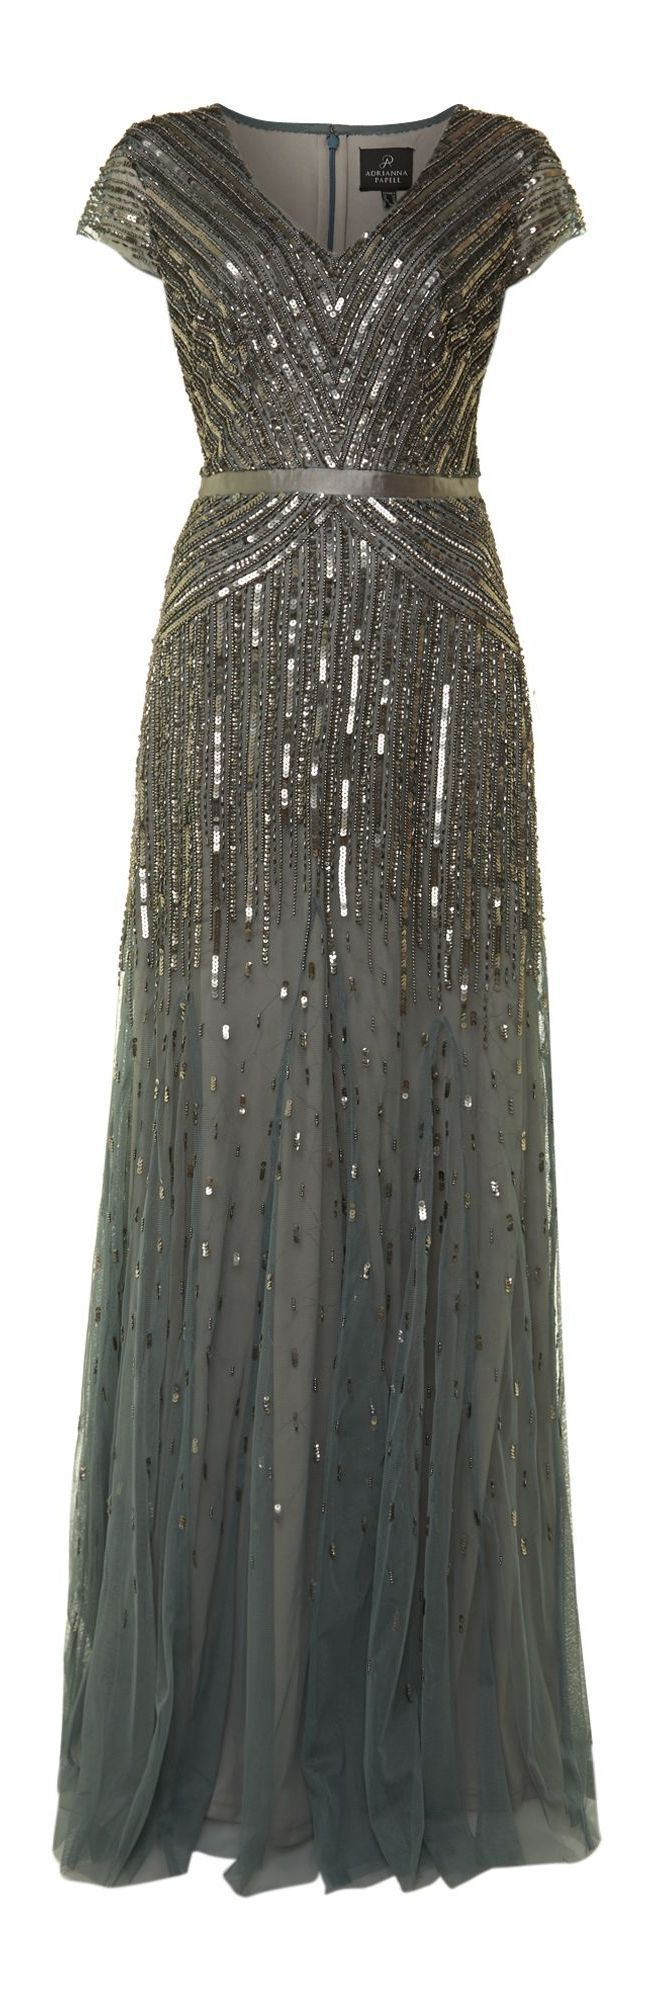 Adrianna Papell Gray Beaded Mesh Maxi Dress. What a gorgeous dress. Reminds me of early 1900's style but with a modern twist.